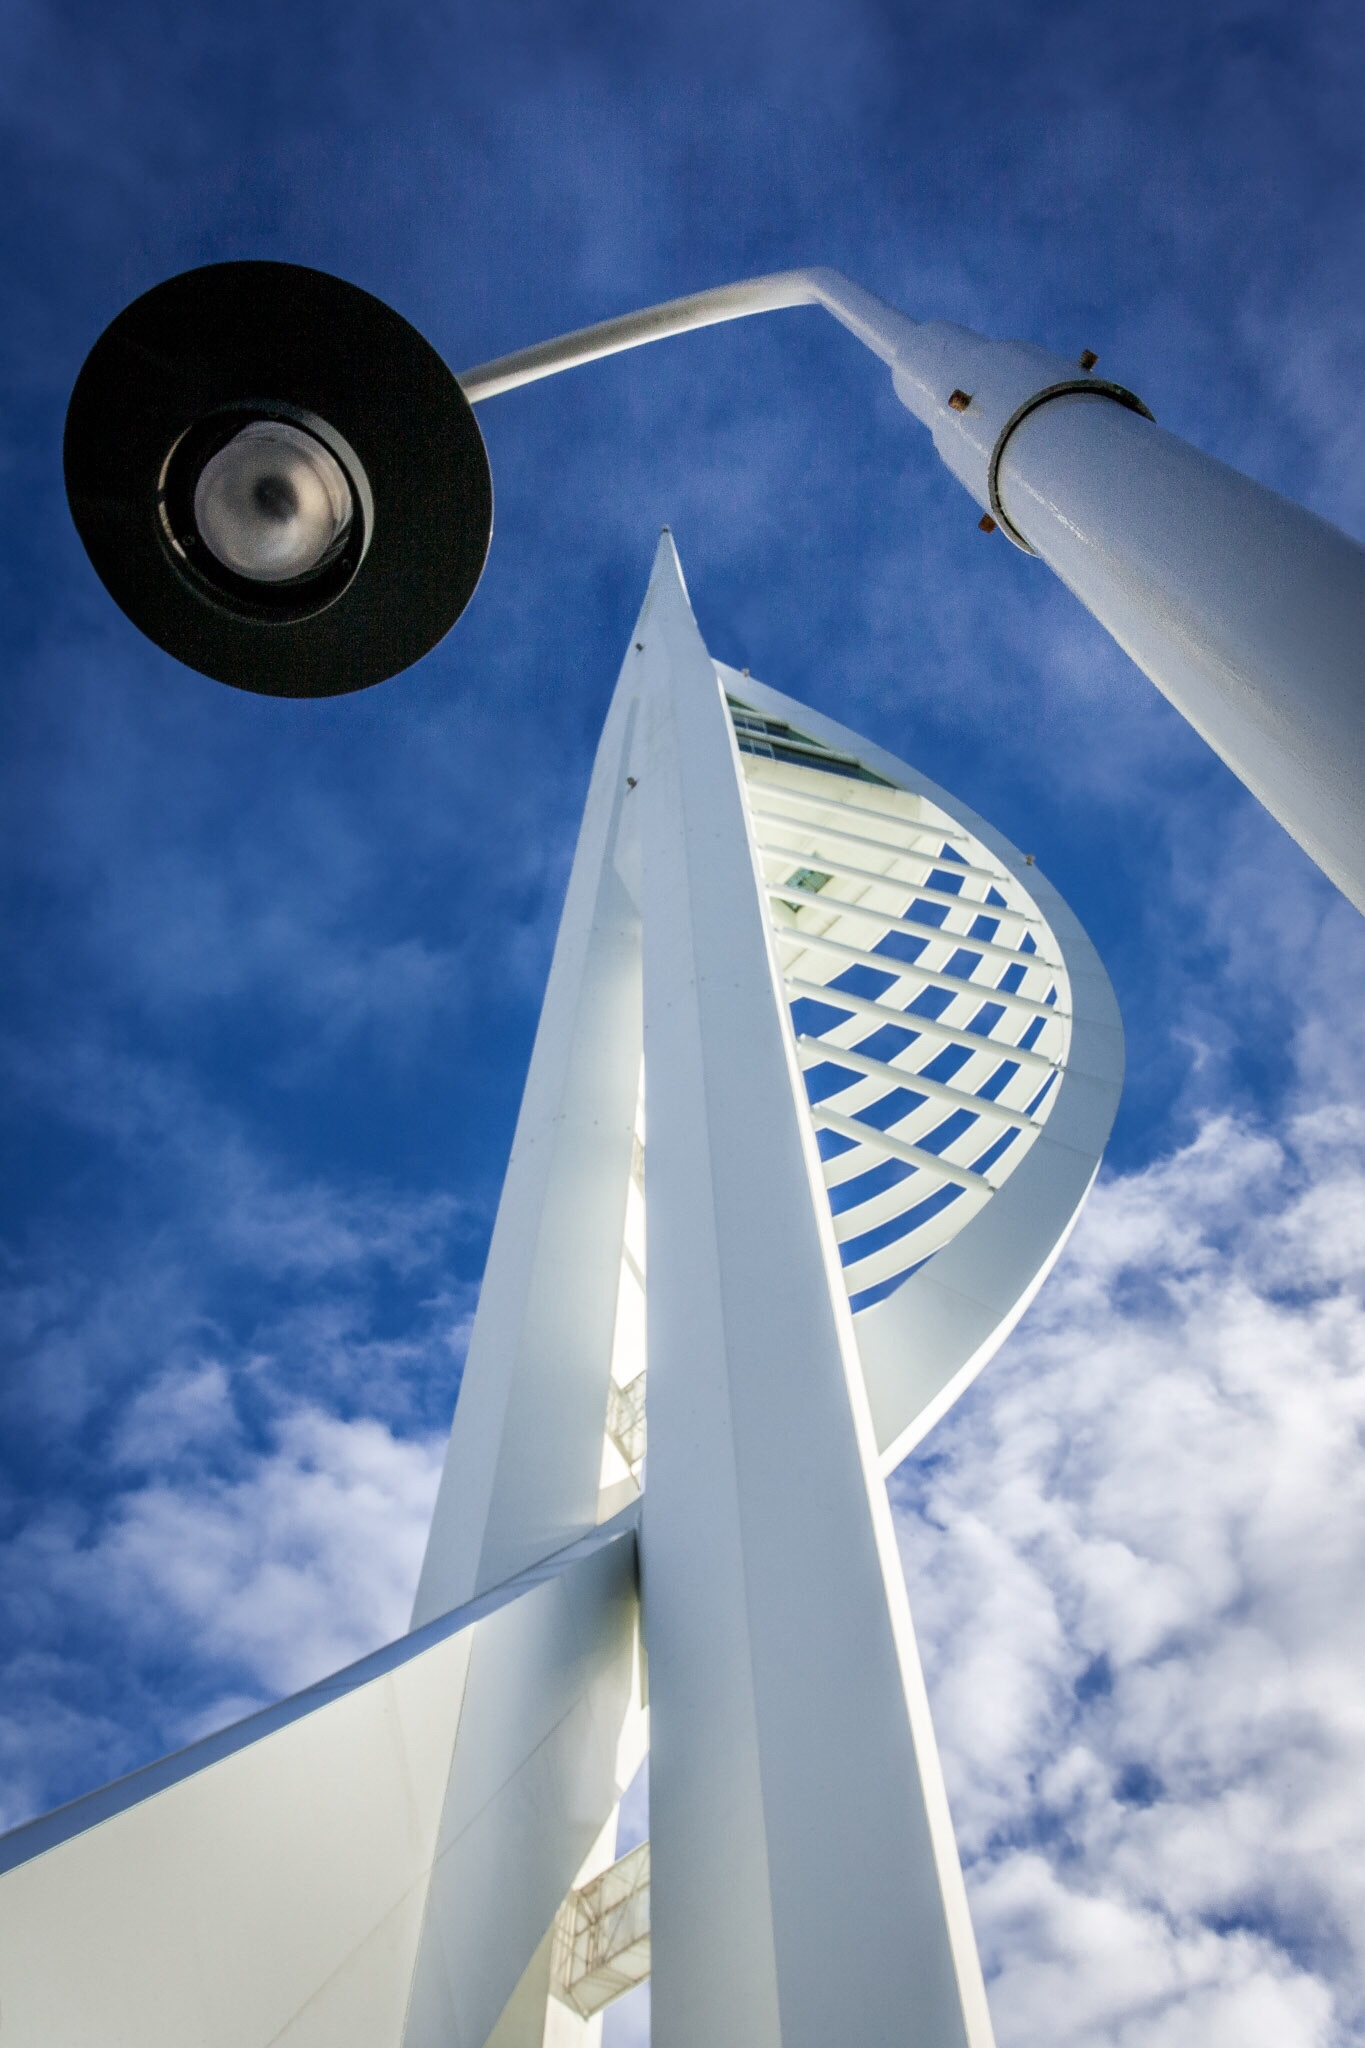 Picture of the Spinnaker Tower in Portsmouth